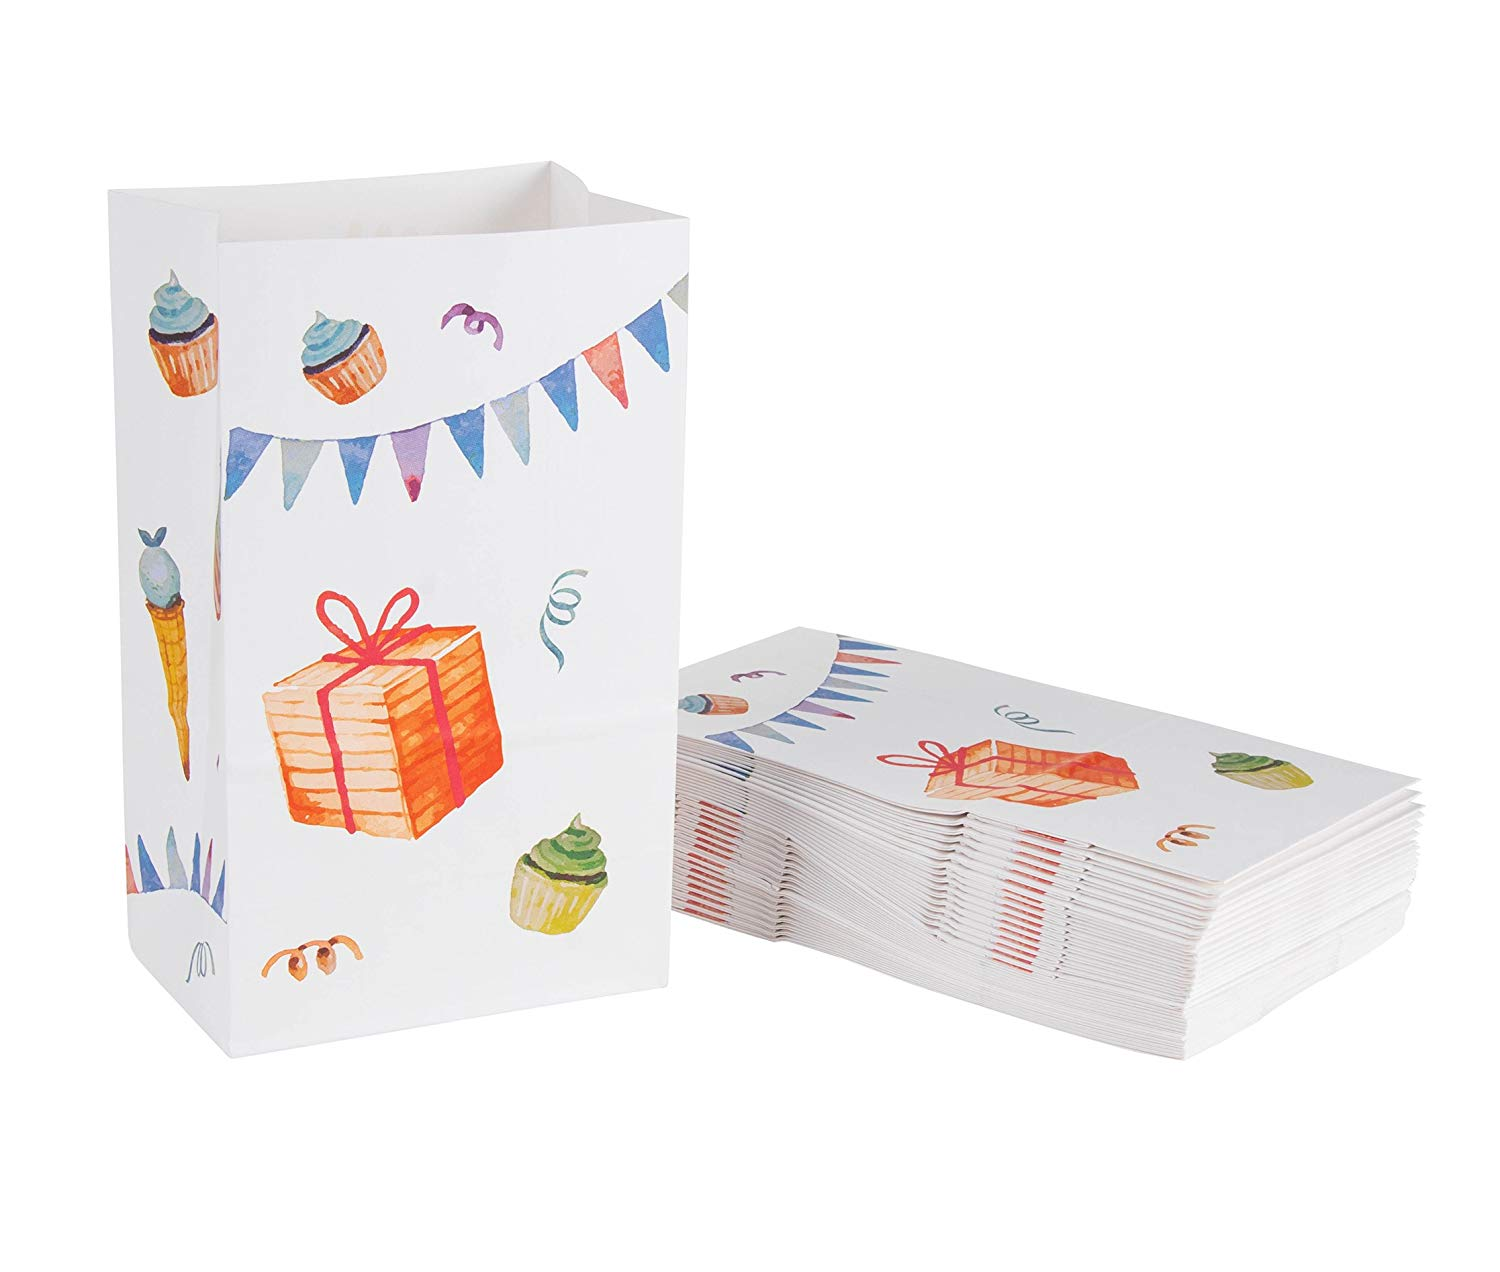 Party Treat Bags - 36-Pack Gift Bags, Birthday Party Supplies, Paper Favor Bags, Recyclable Goodie Bags for Kids, Birthday Cake and Gifts Design, 5.2 x 8.7 x 3.3 Inches